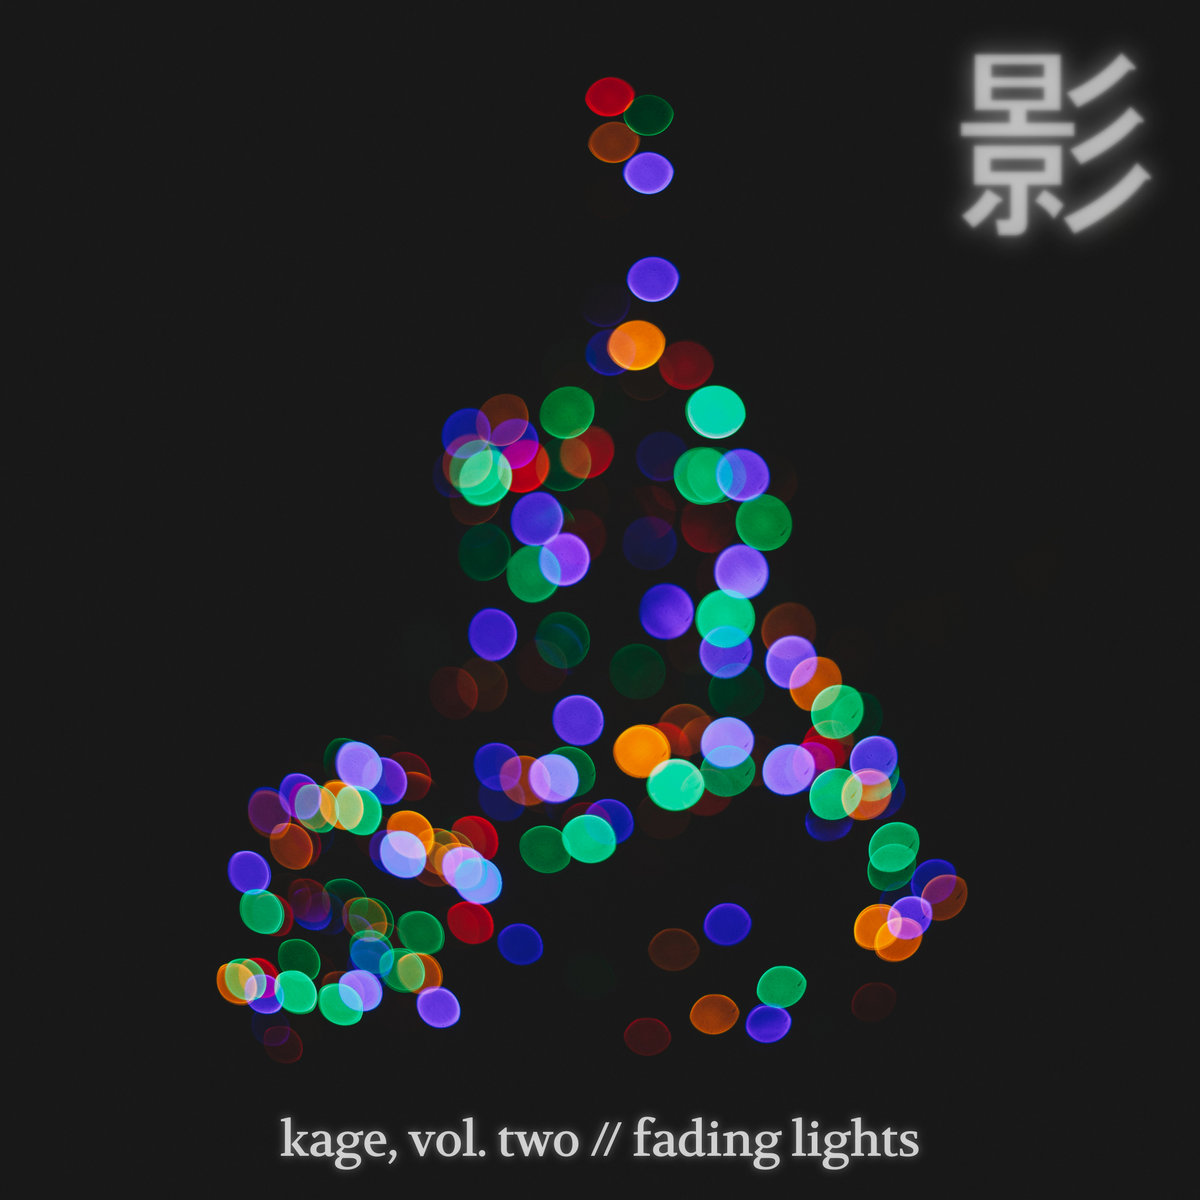 kage vol two fading lights